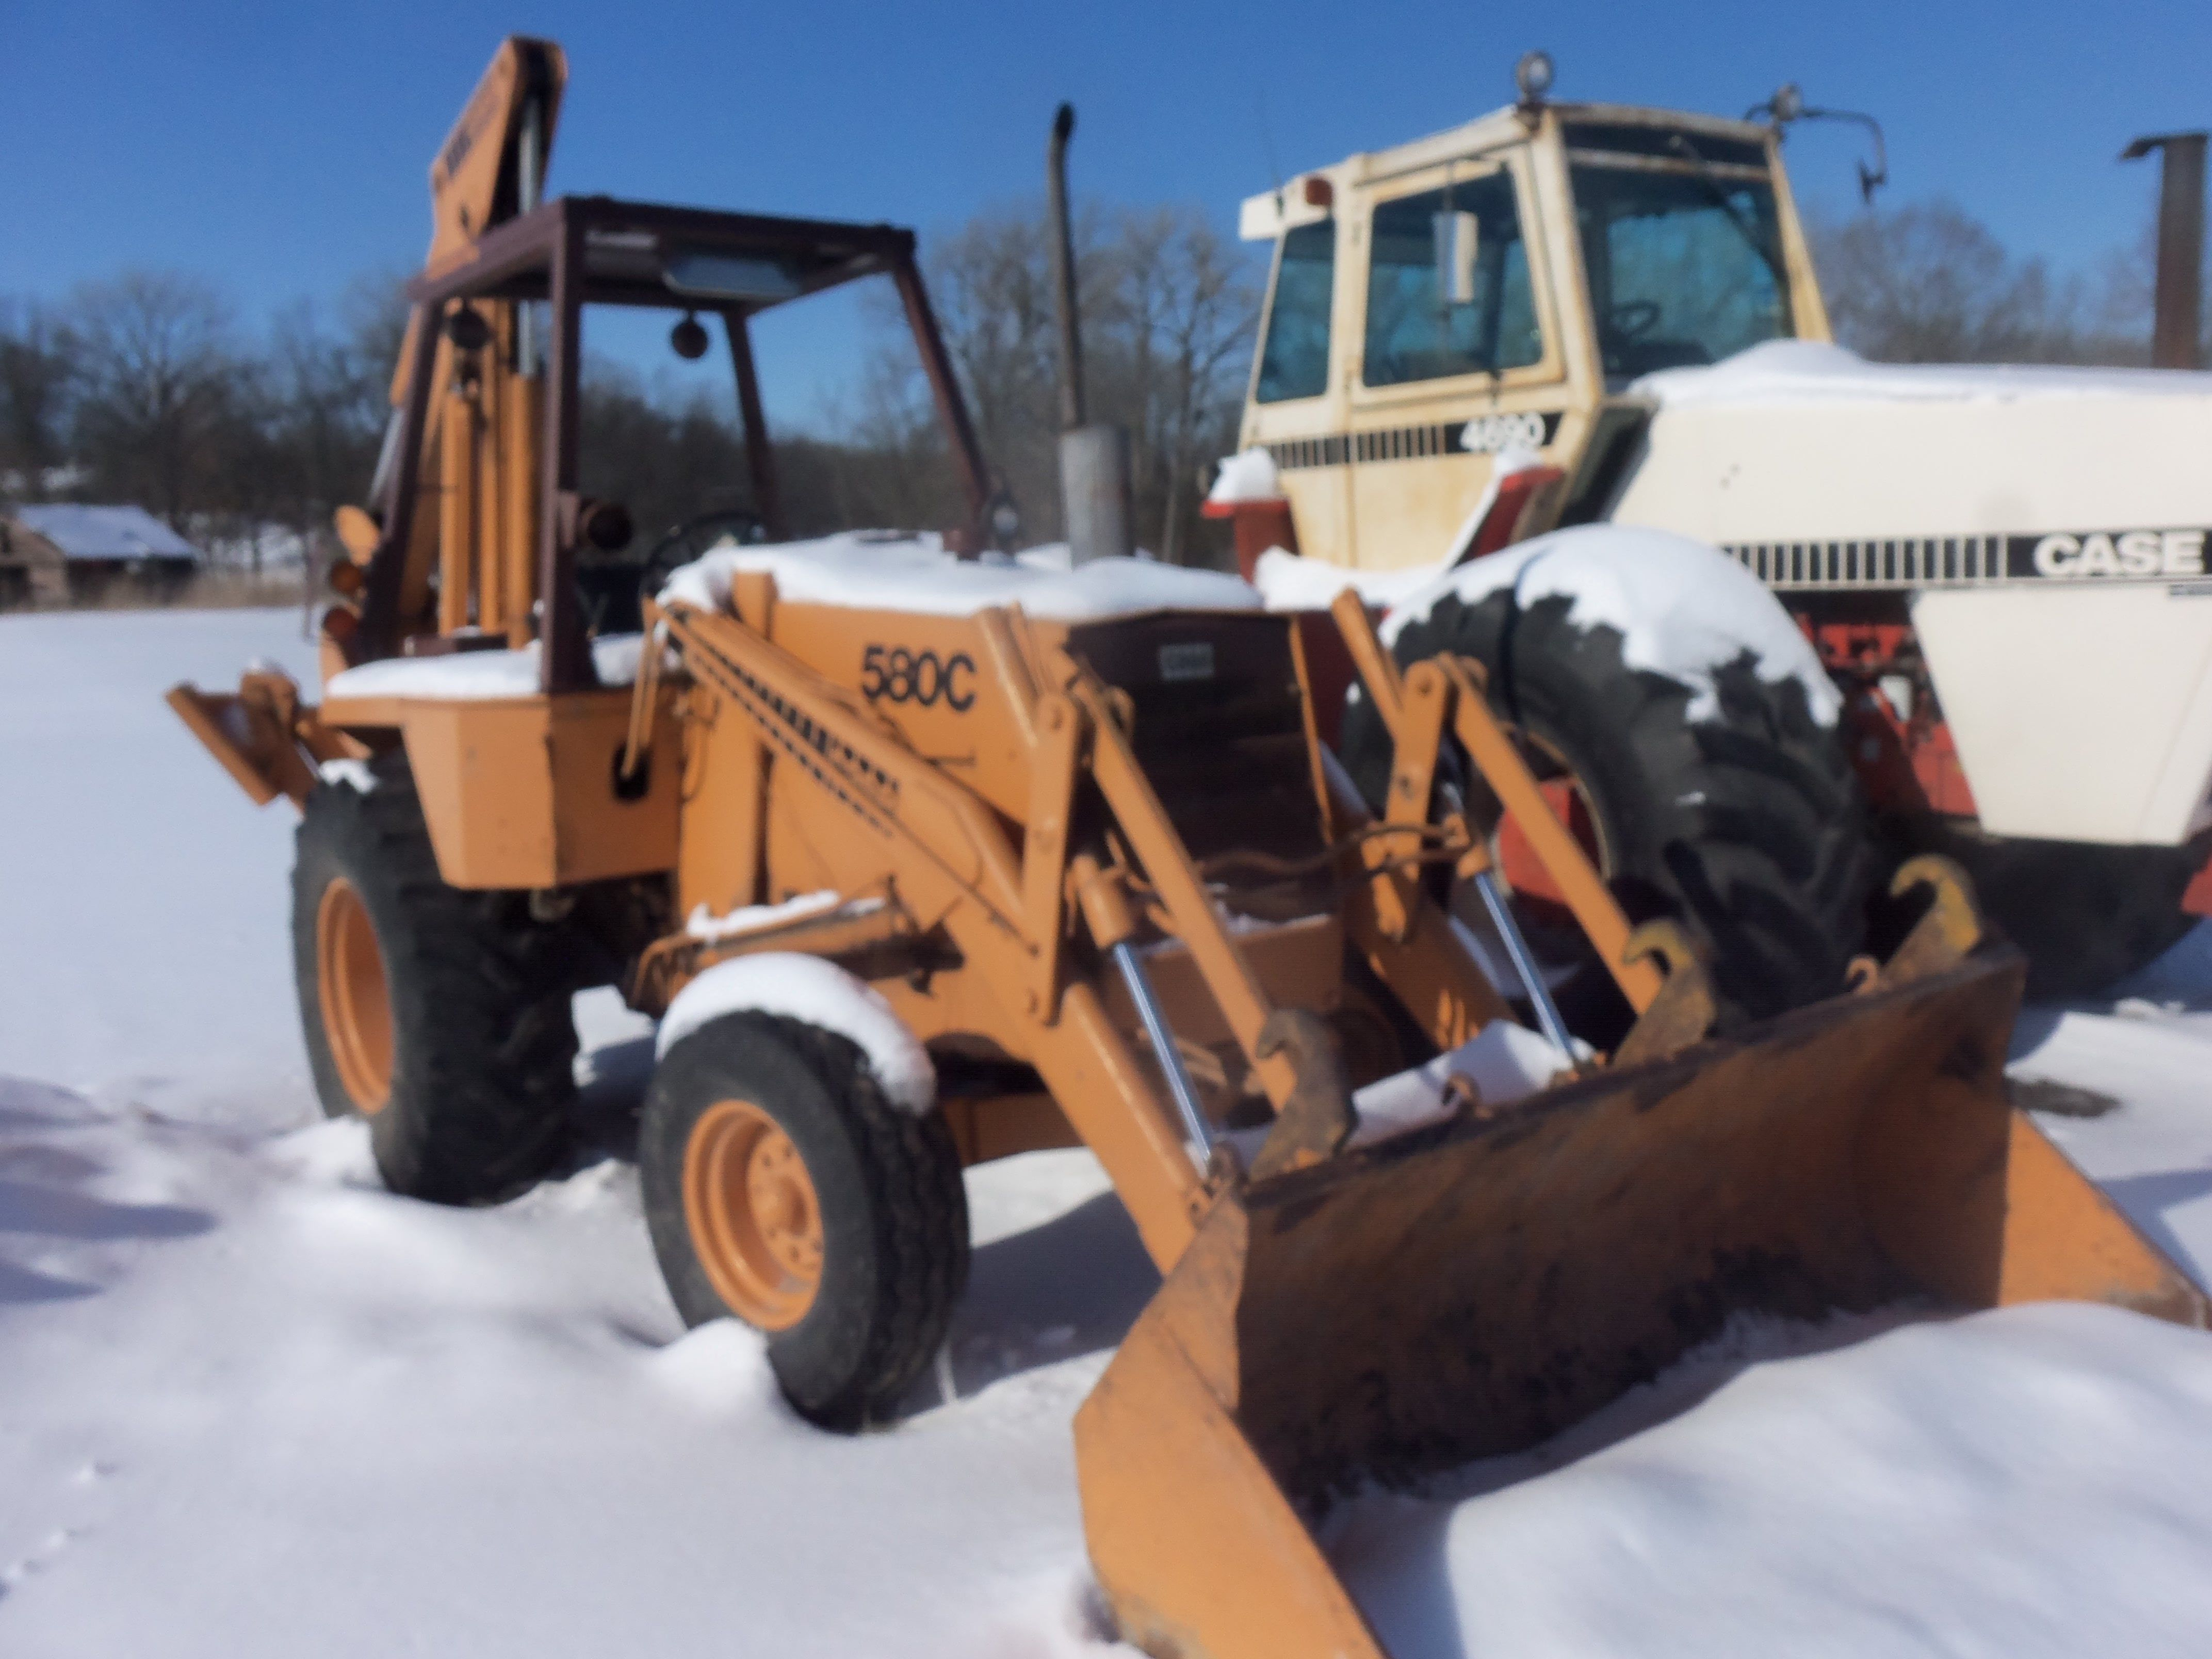 Case 580c Tractor Loader Backhoe From Late 1970s Tractor Loader Tractors Backhoe